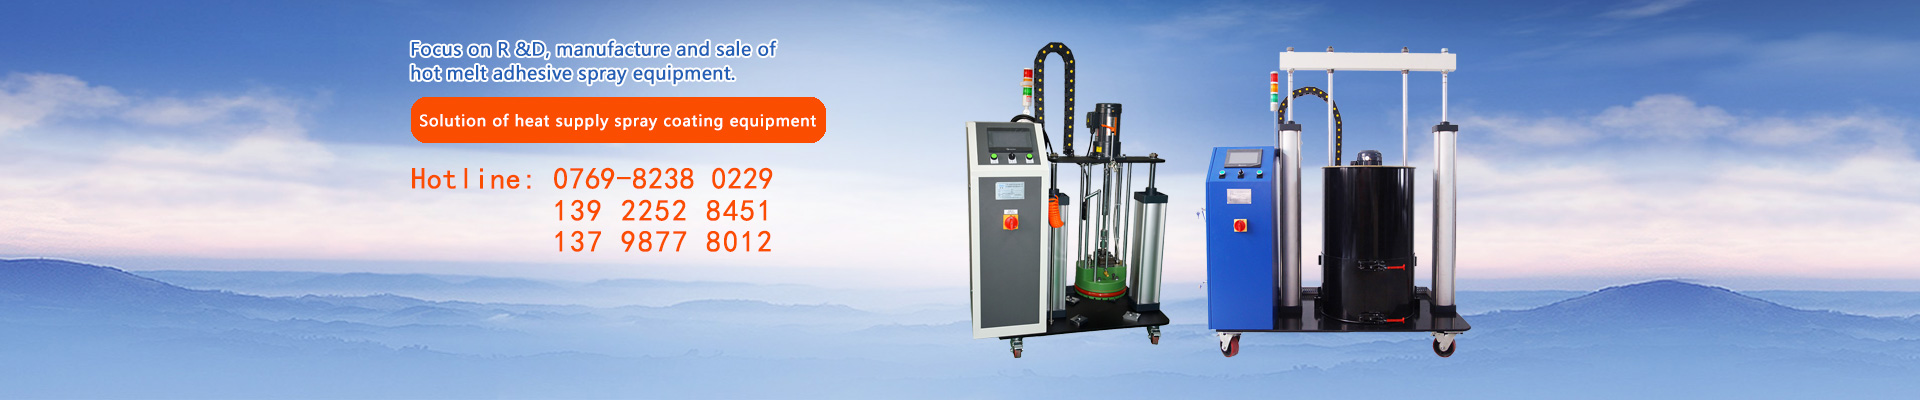 Dongguan SaiPu Electromechanical Equipment Co., Ltd.